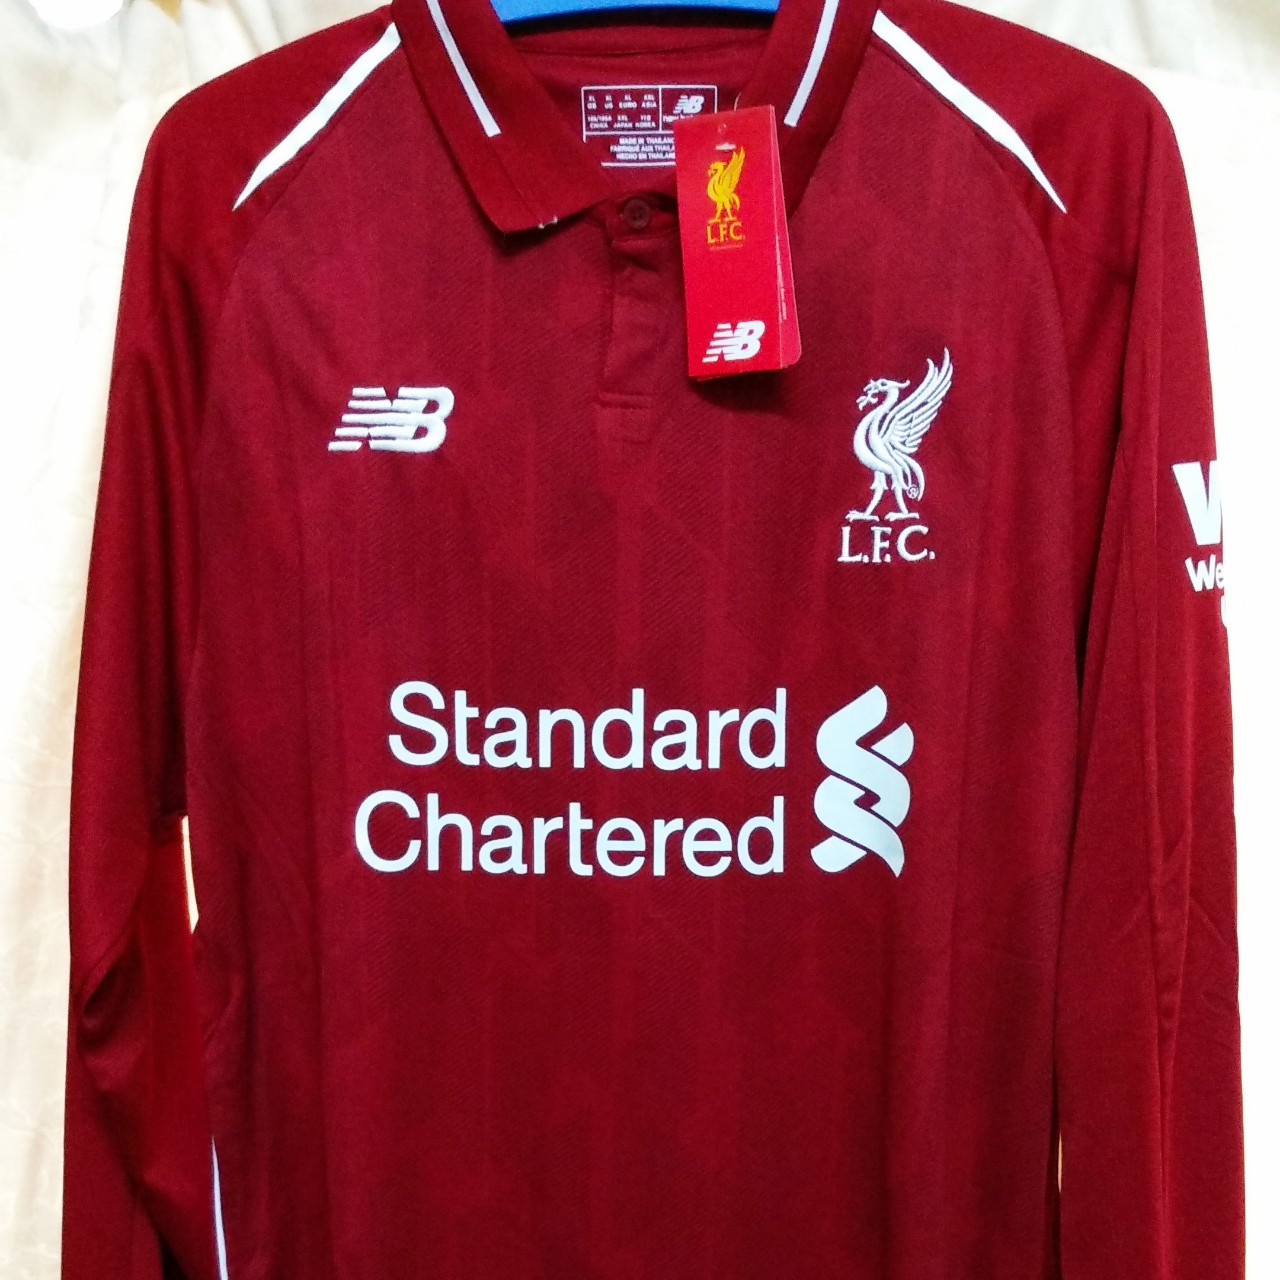 finest selection fdf97 4a08a LIVERPOOL FC HOME JERSEY LS 2018/19 Now @ MYR250... - Depop